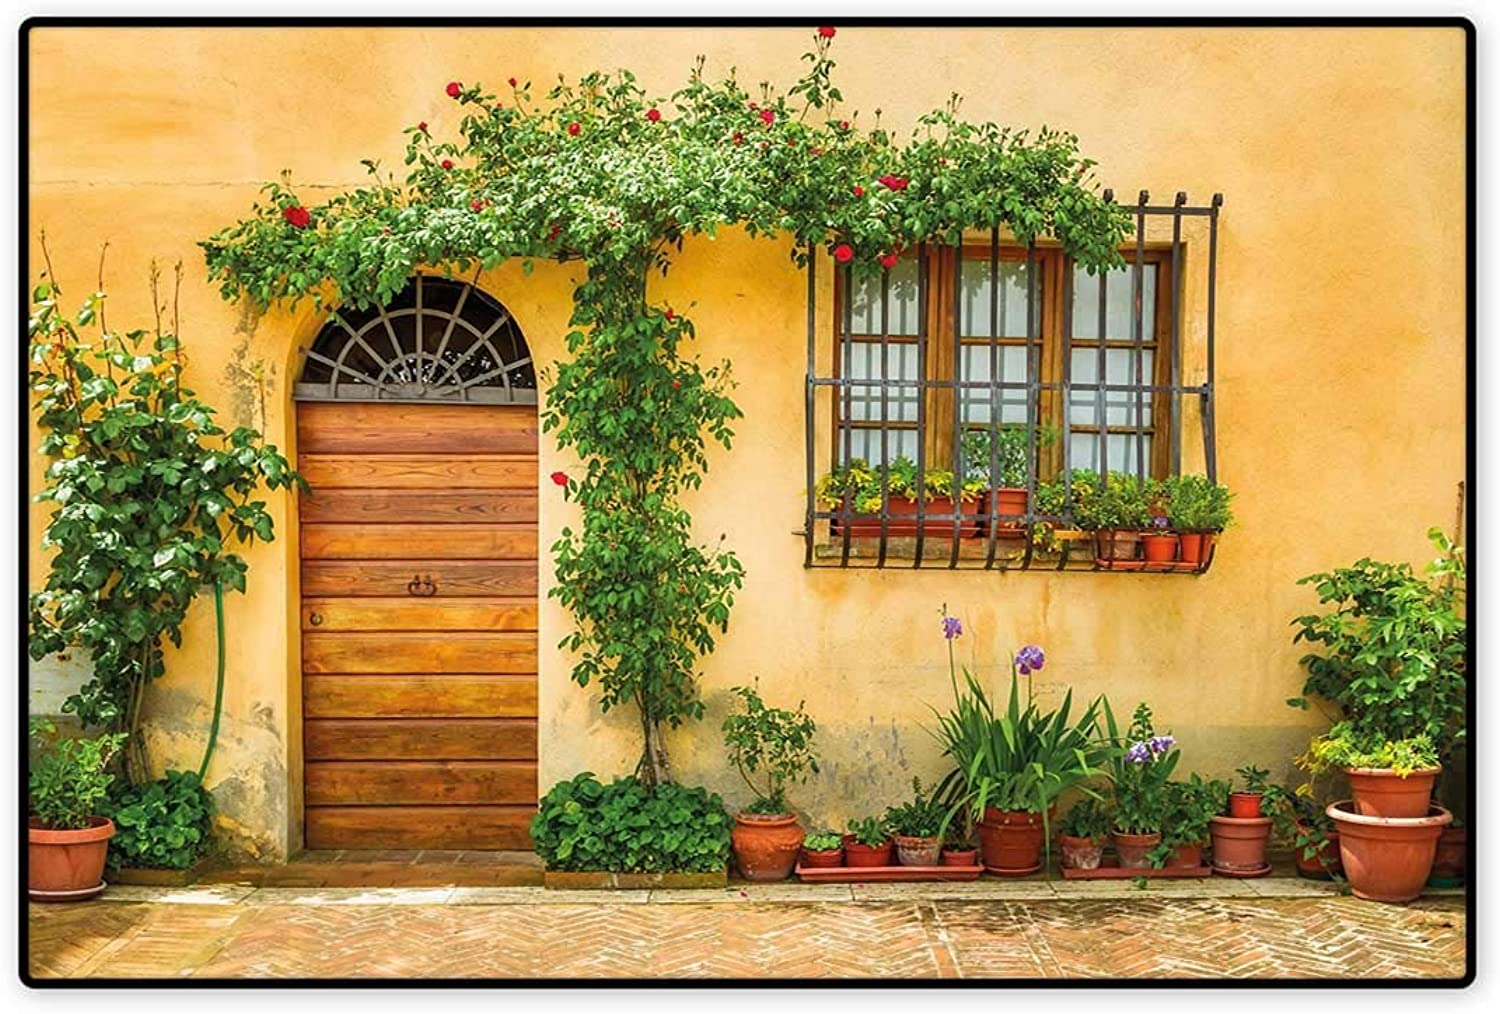 Door Mat Indoors Porch with Different Flowers Pots Fresh Green Plants City Life in Tuscany Floor Mat Pattern 32 x48  Apricot Green Brown